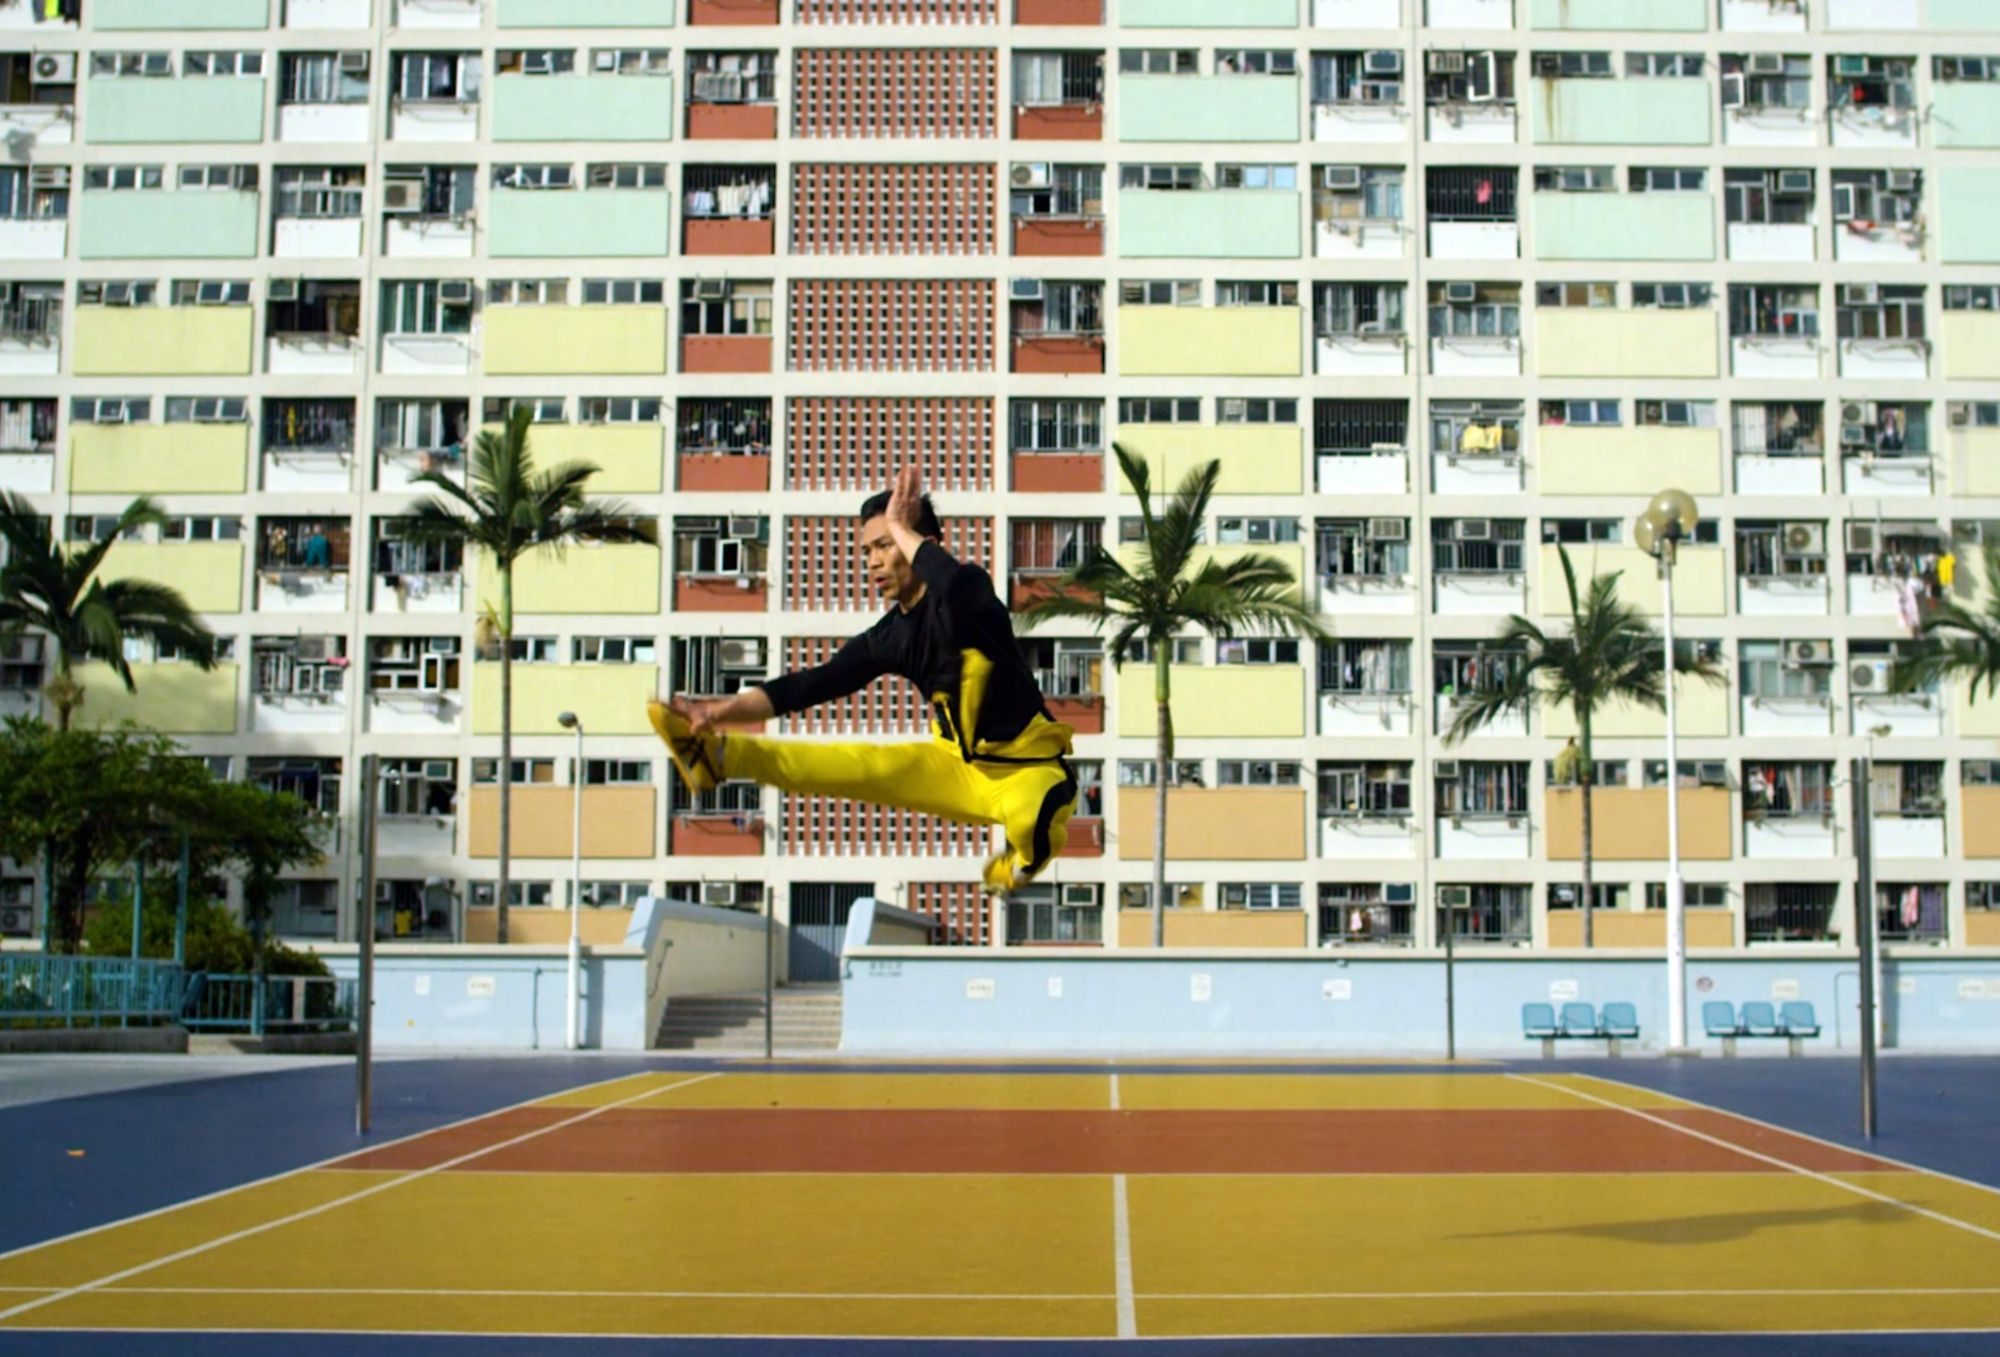 ON VIEW: HONG KONG—10 Dances Inspired By Our City